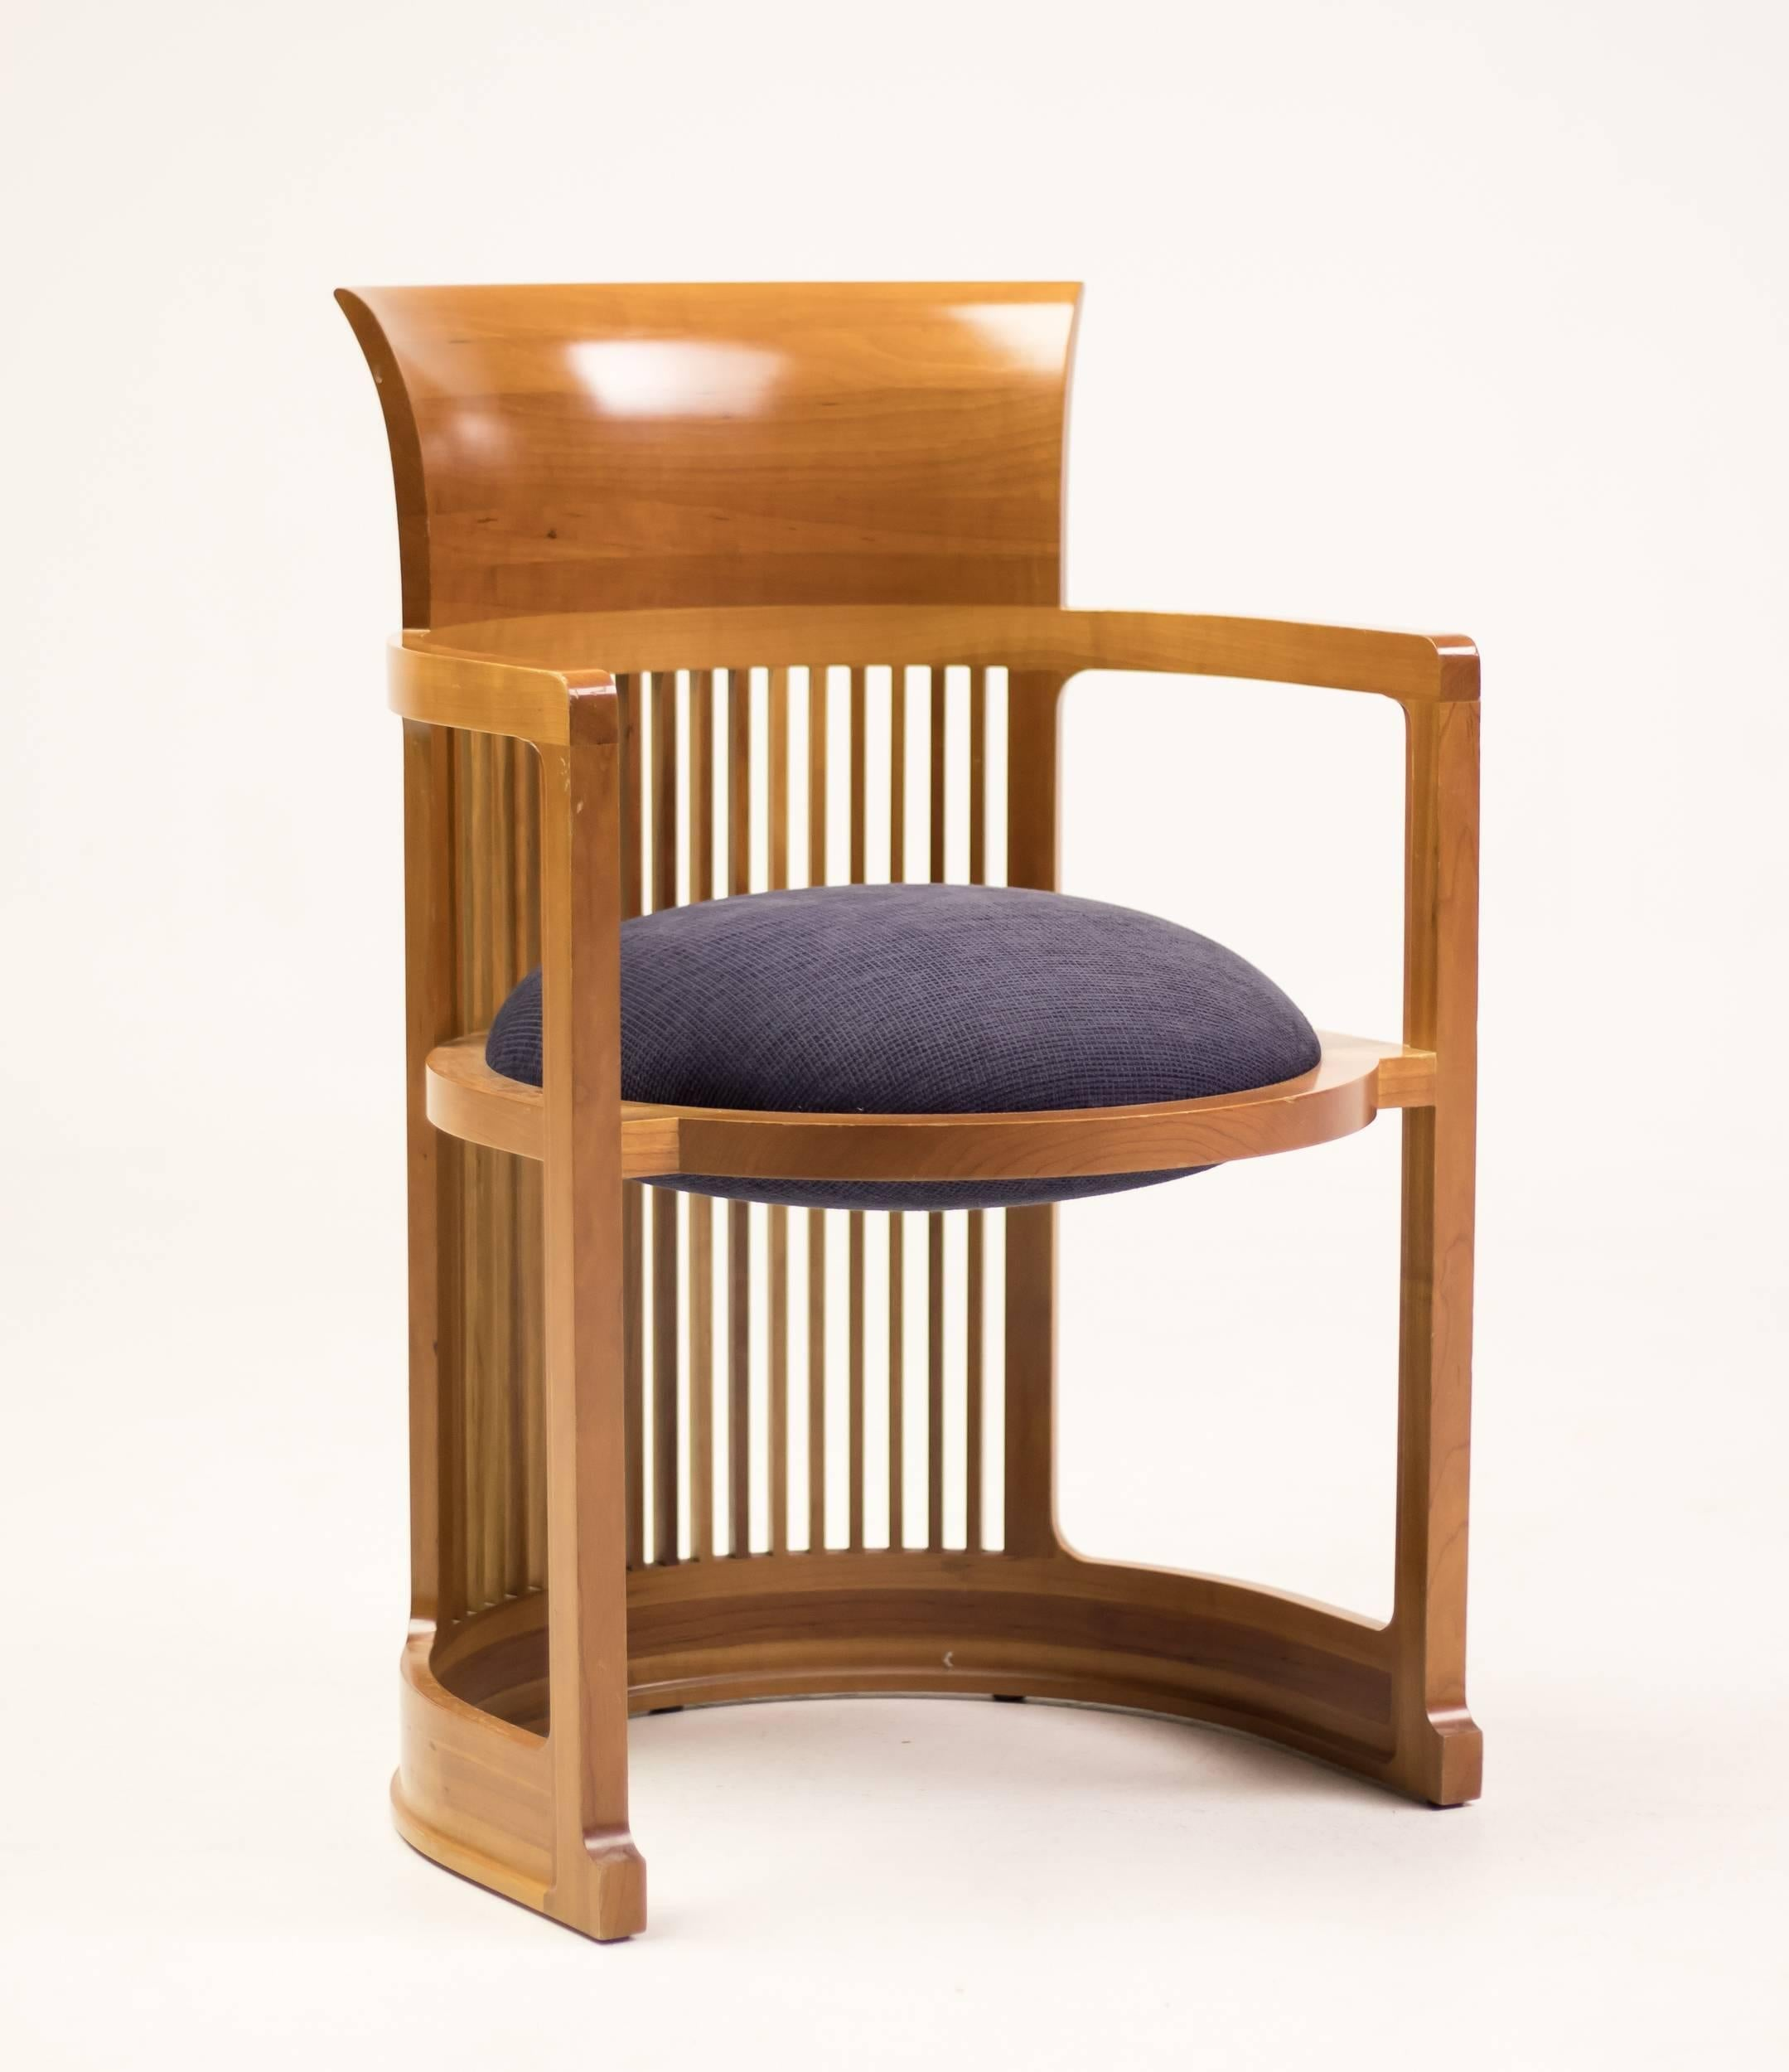 Cina Taliesin Dining Table And Barrel Chairs Designed By Frank Lloyd Wright For At 1stdibs